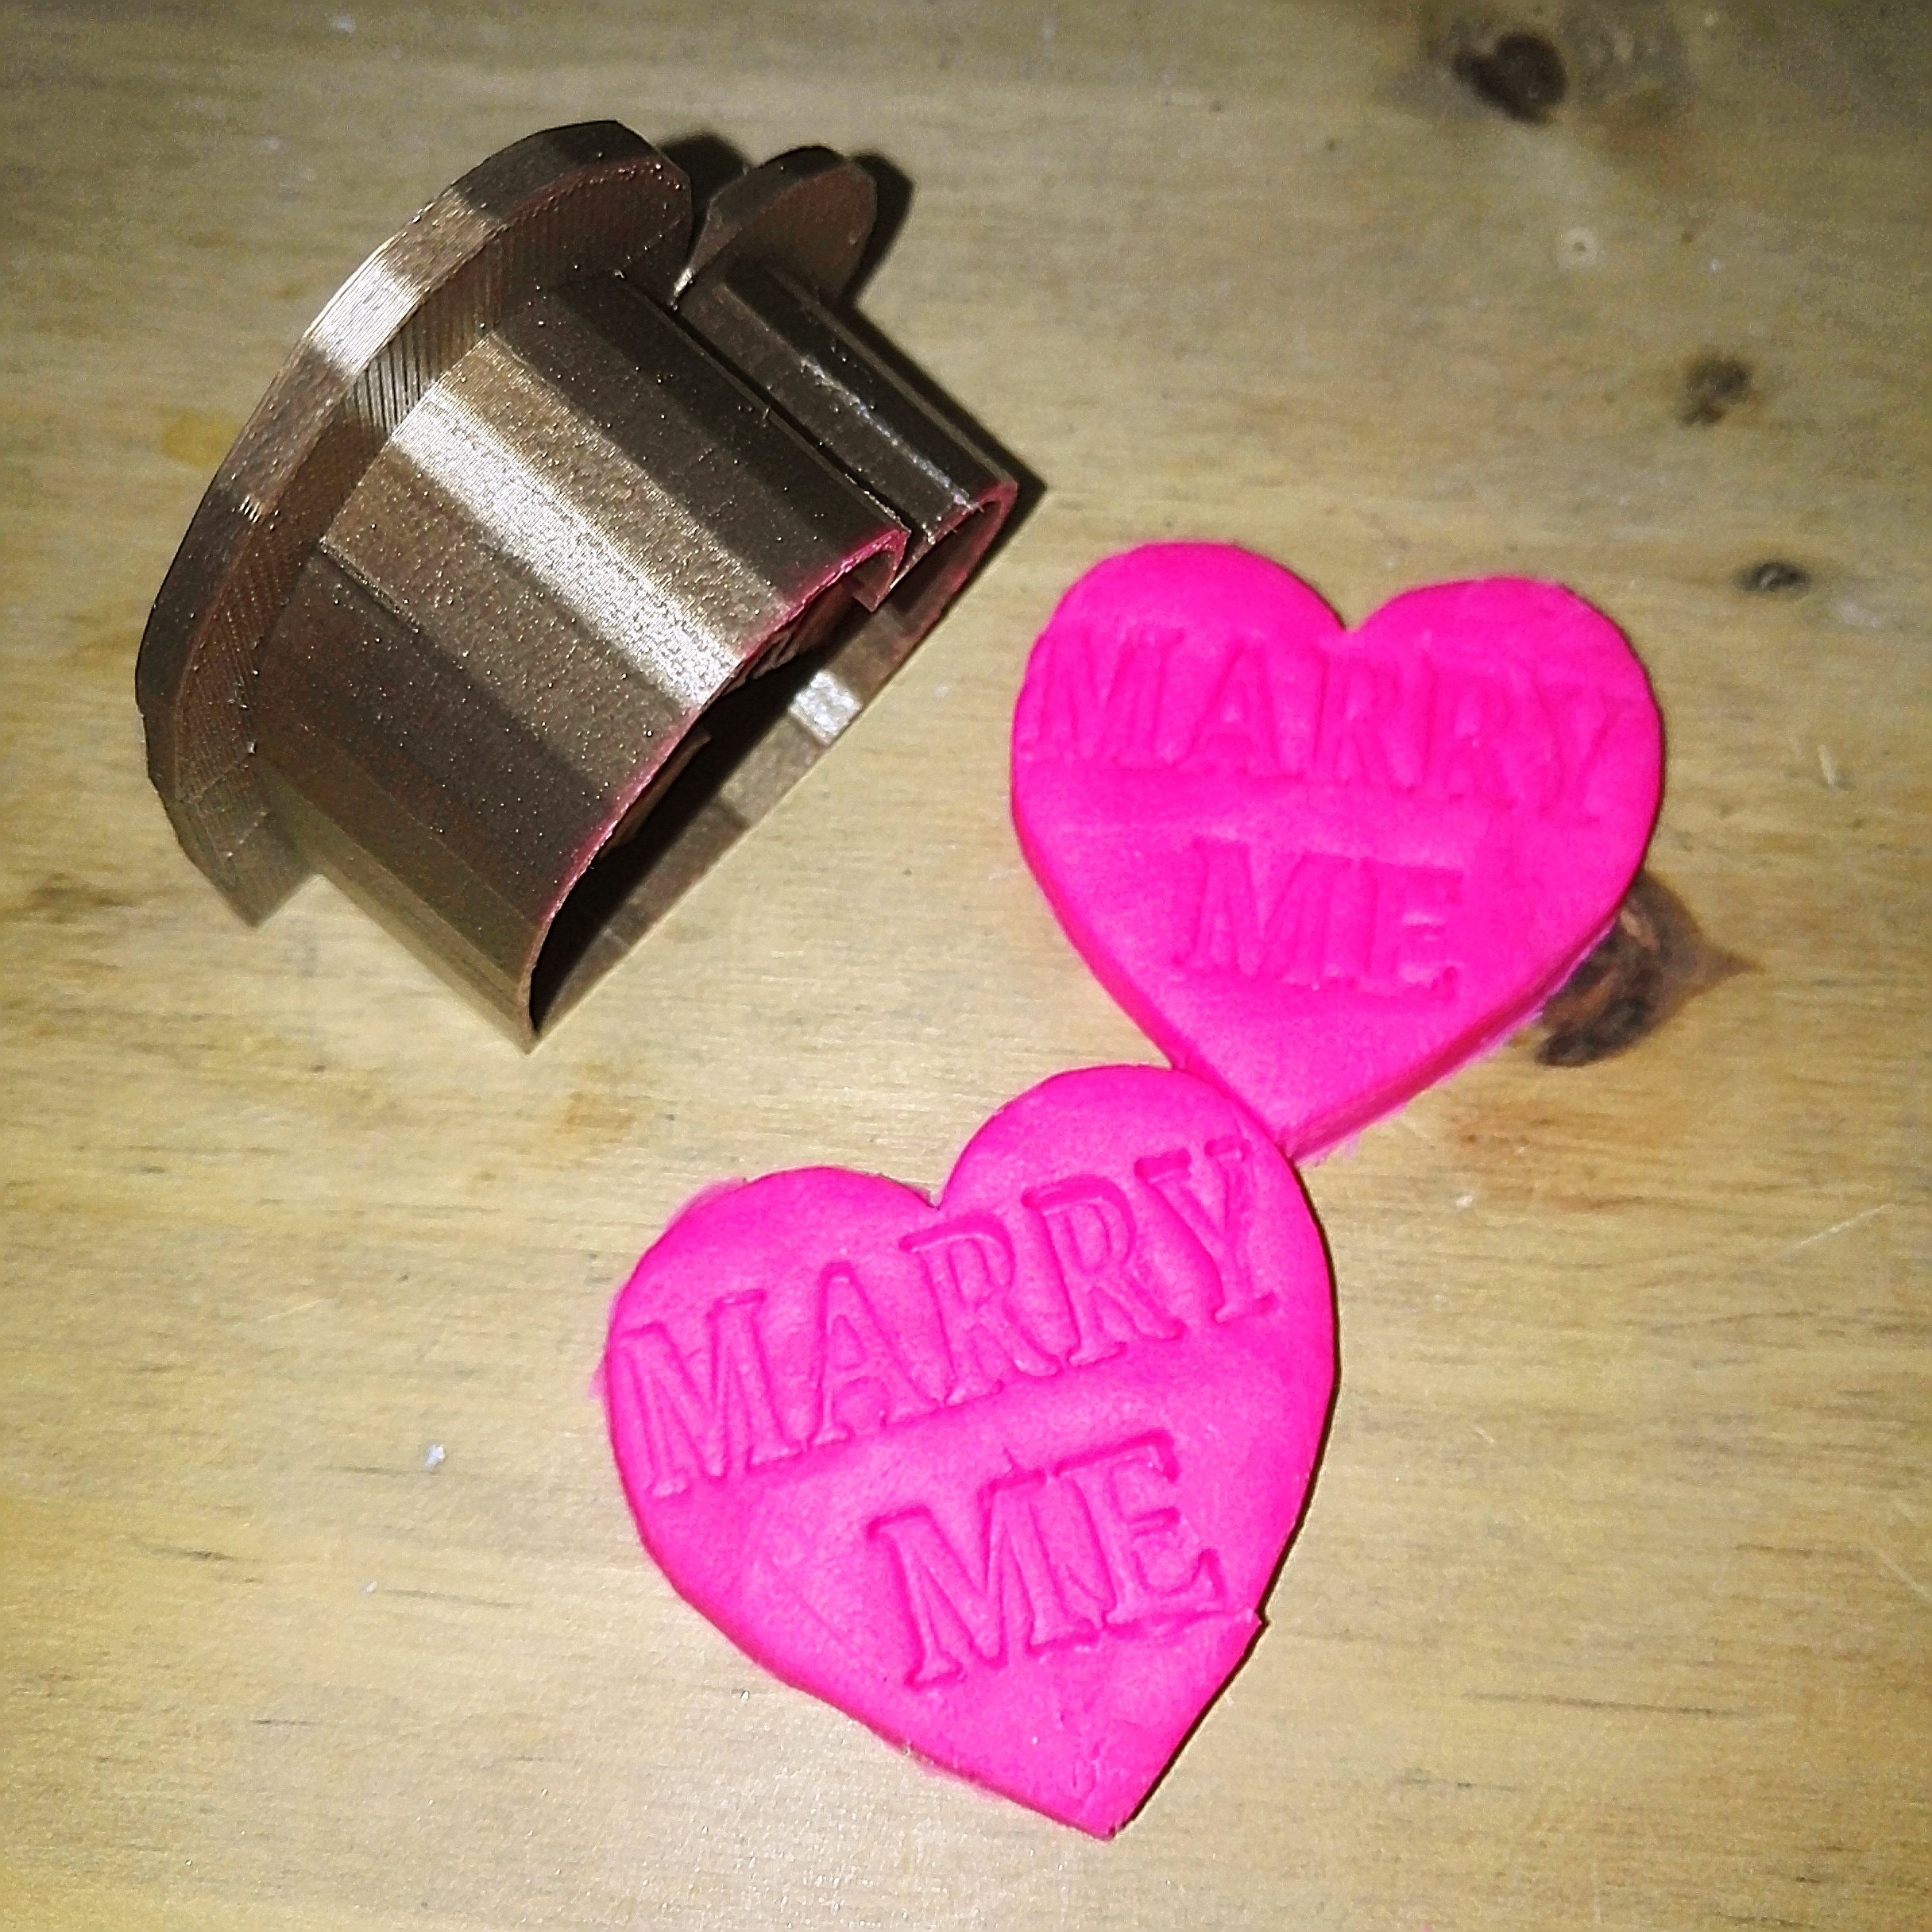 Marry Me -  3d Printed Gold Marriage Proposal Valentines Day Cookie Dough Cutter